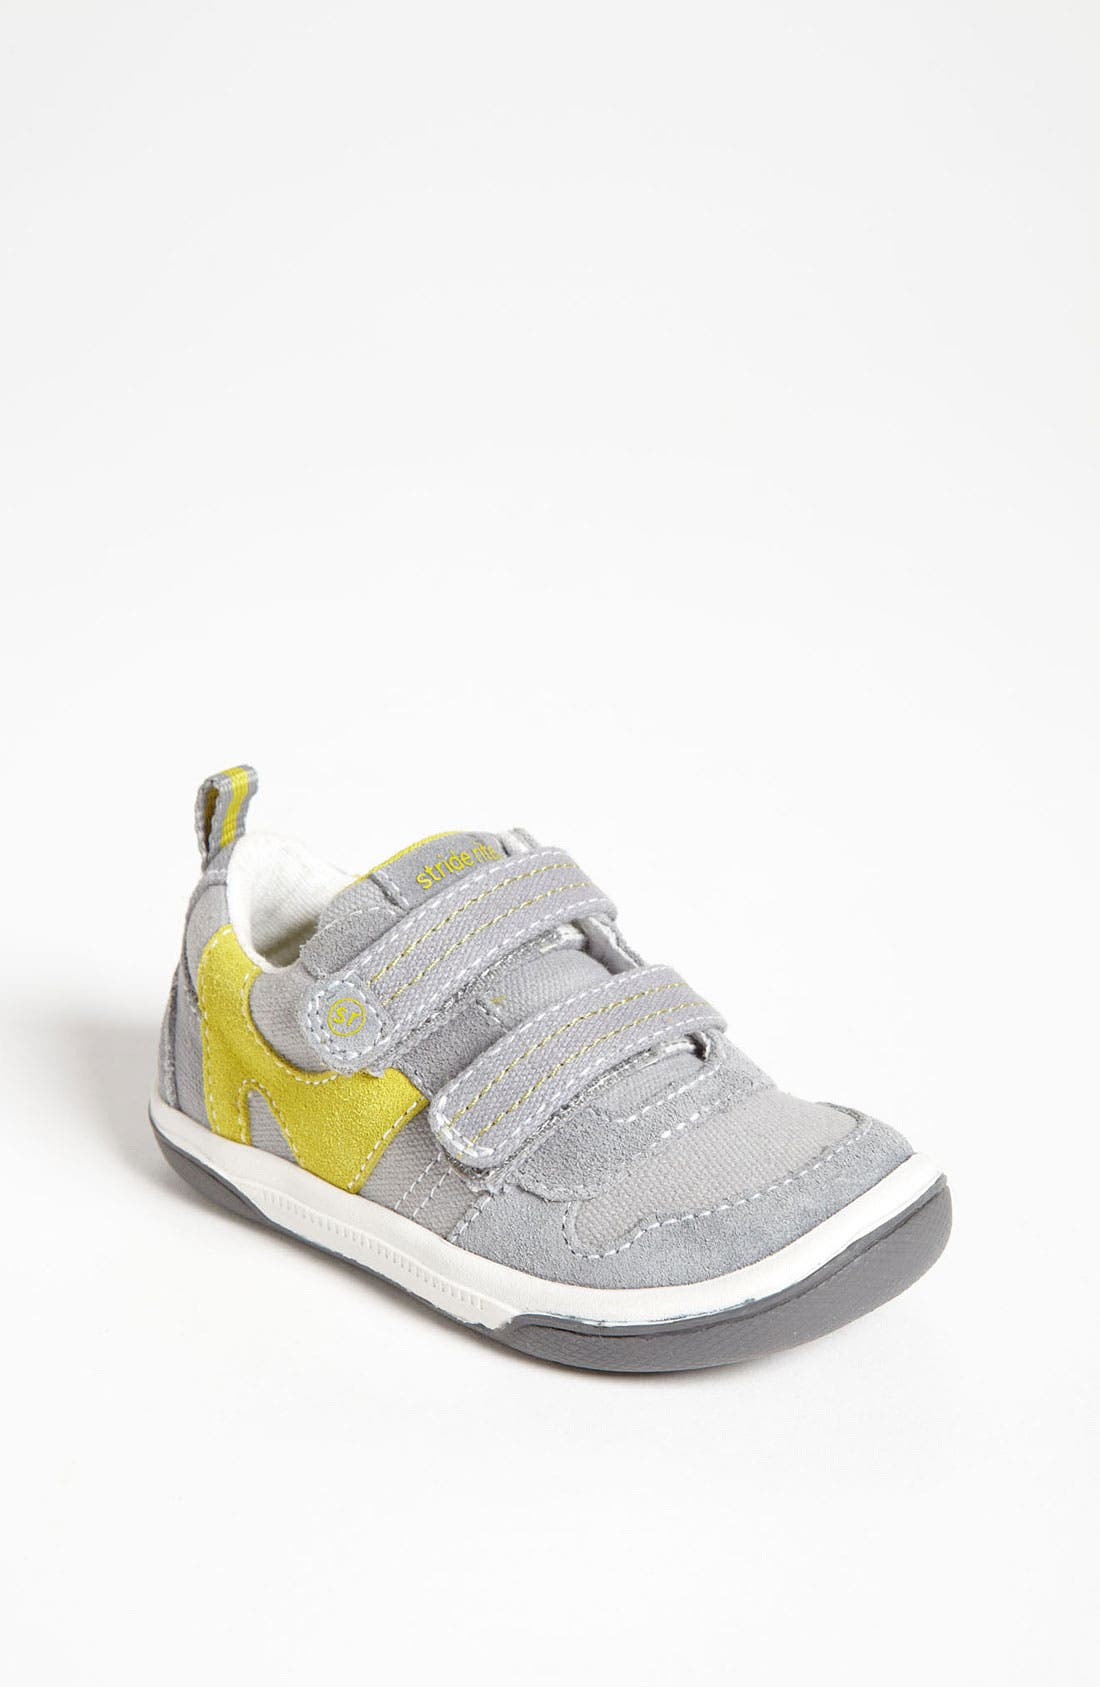 Main Image - Stride Rite 'Jamison' Sneaker (Baby, Walker & Toddler)